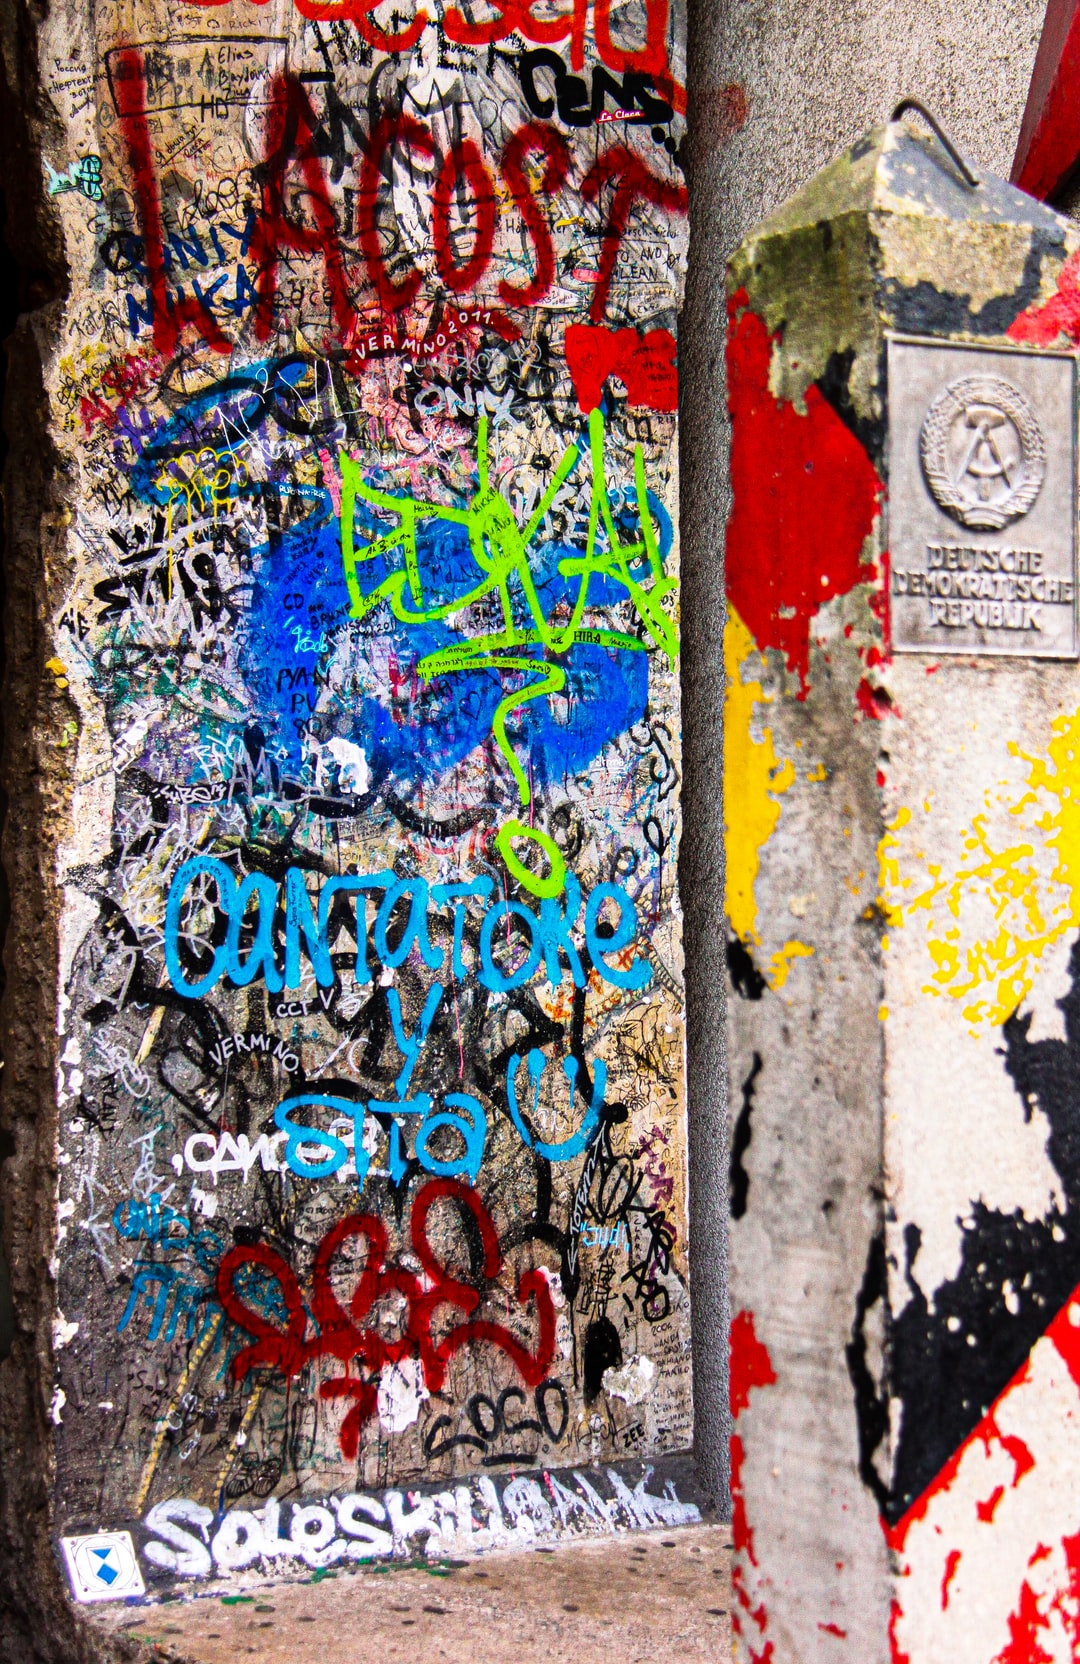 Sprayed graffiti piece of the Berlin wall close to Checkpoint Charly as symbol of World War II Berlin, Germany.